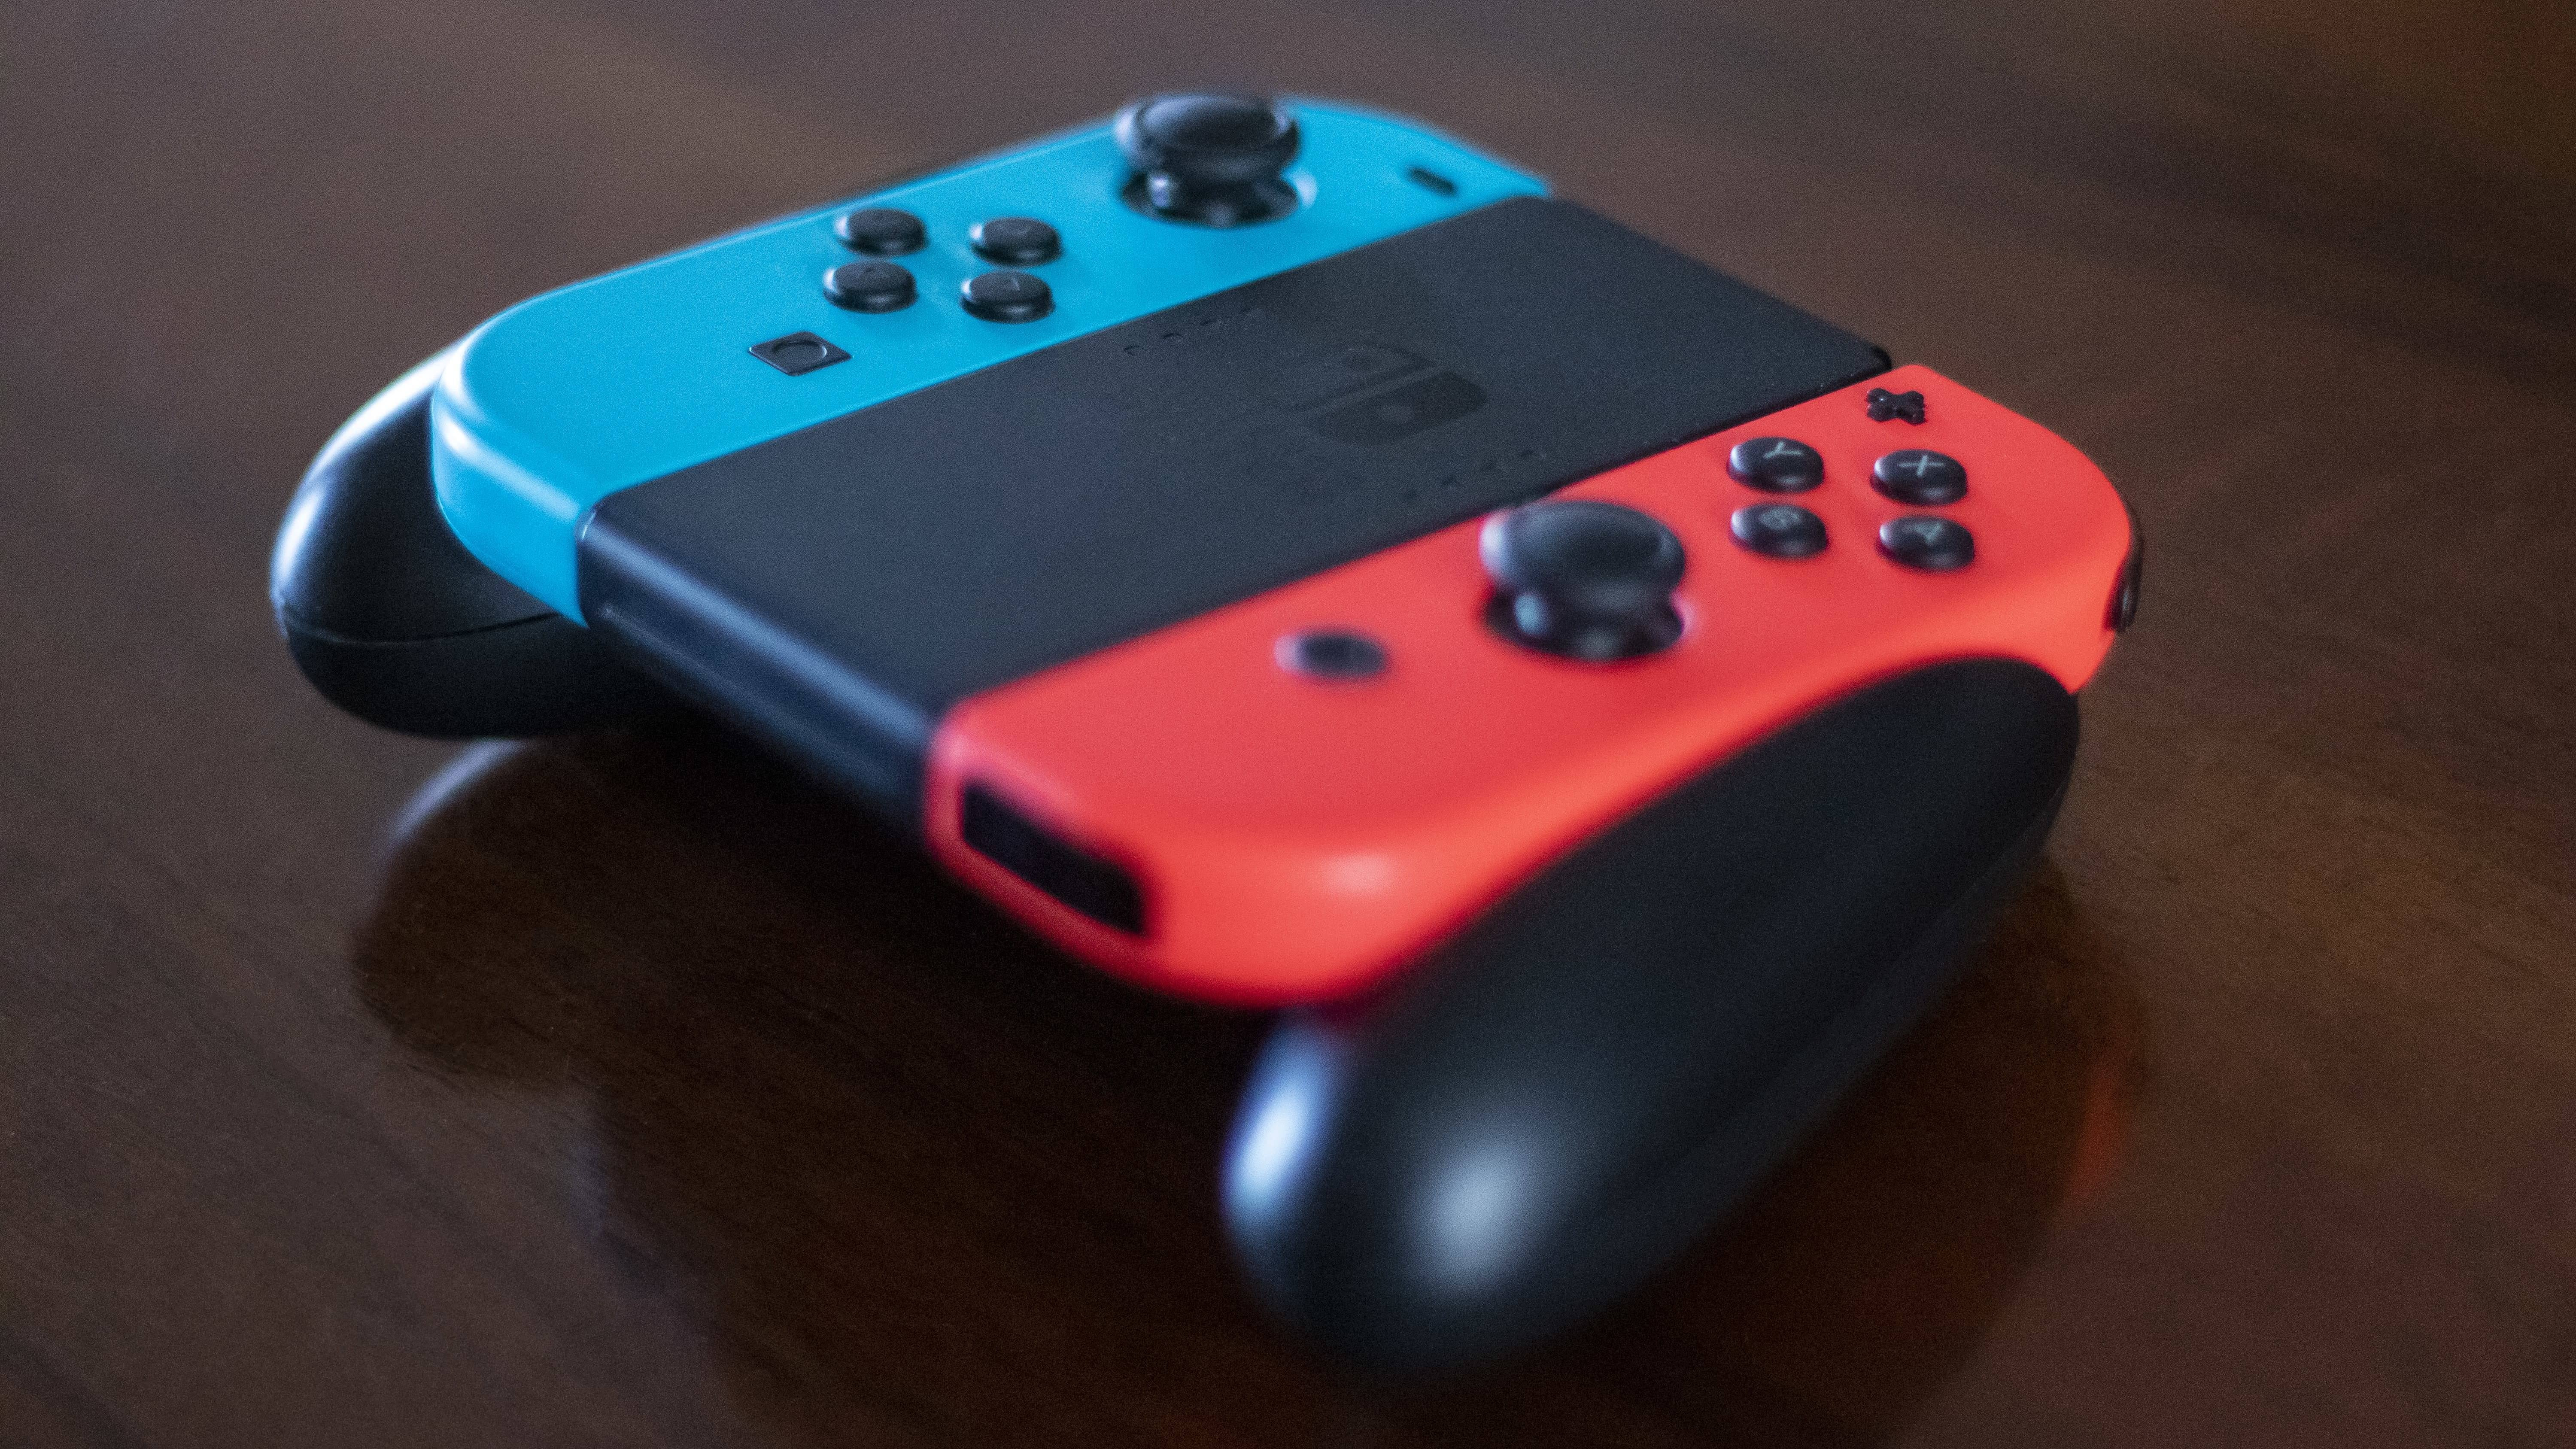 How To Get Your Nintendo Joy-Con Repaired For Free